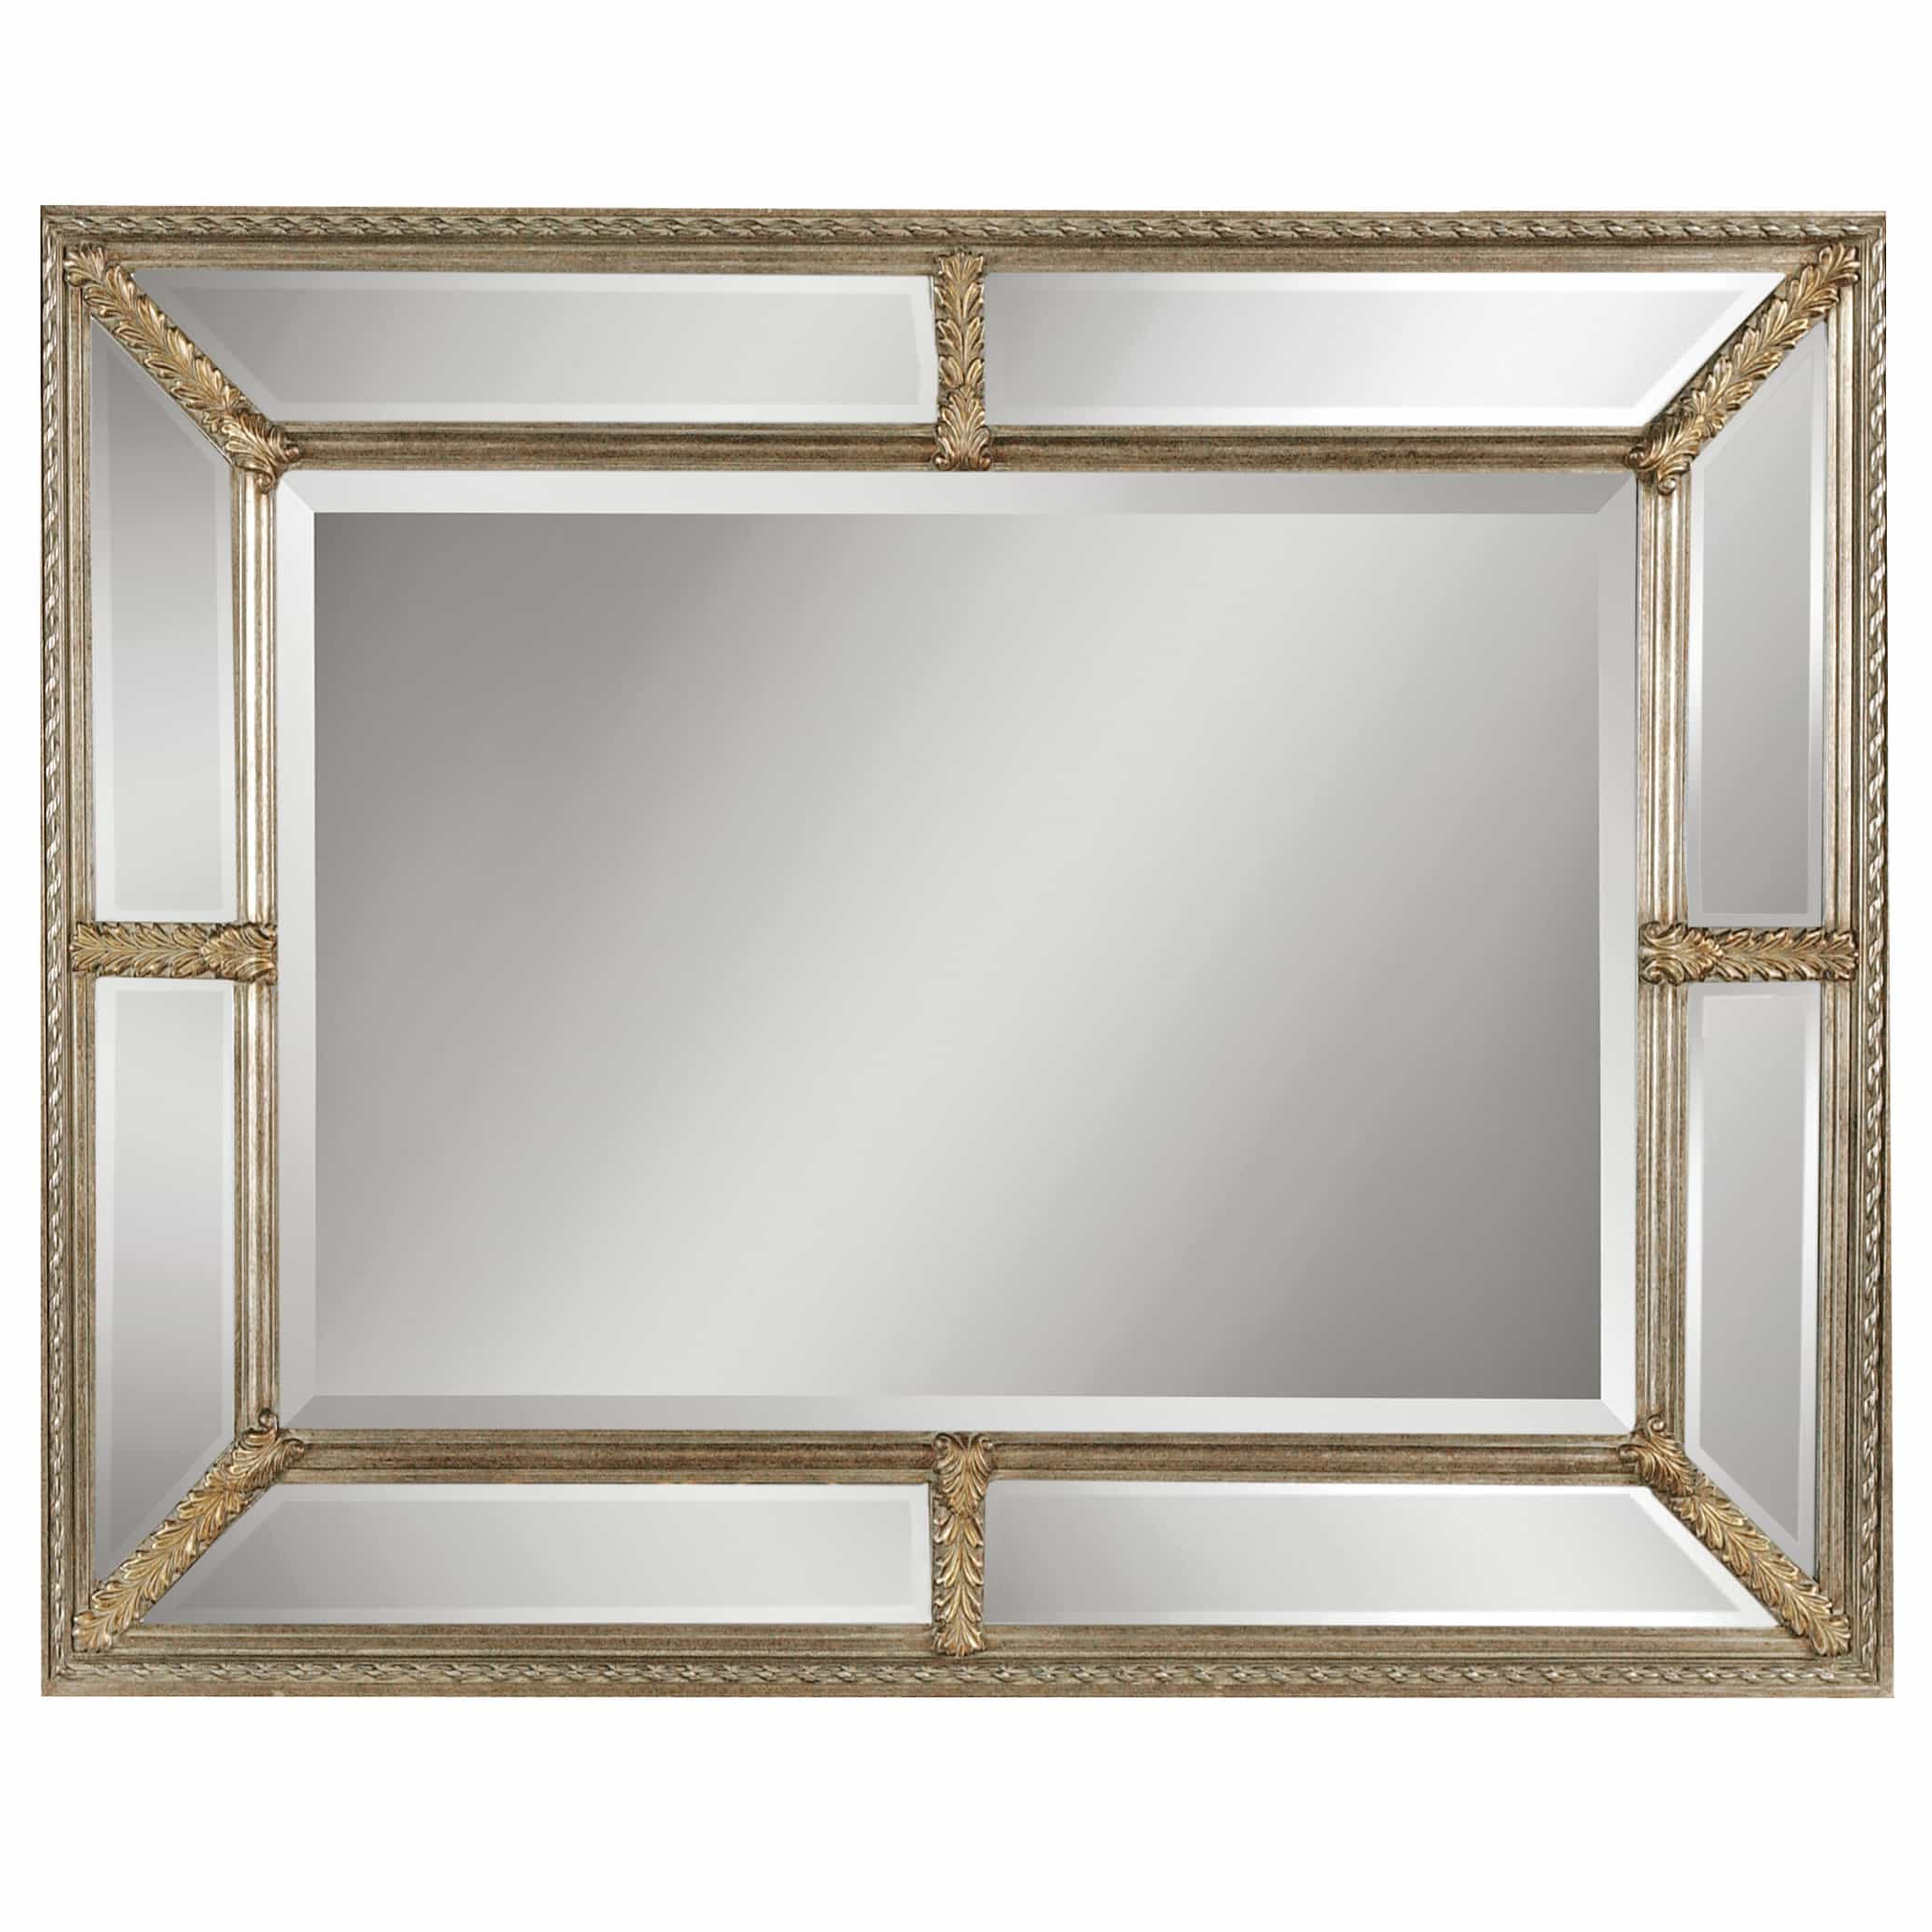 Latest Traditional Wall Mirrors With Regard To Lucinda Traditional Wall Mirroruttermost – 37″ X 49″ (View 13 of 20)